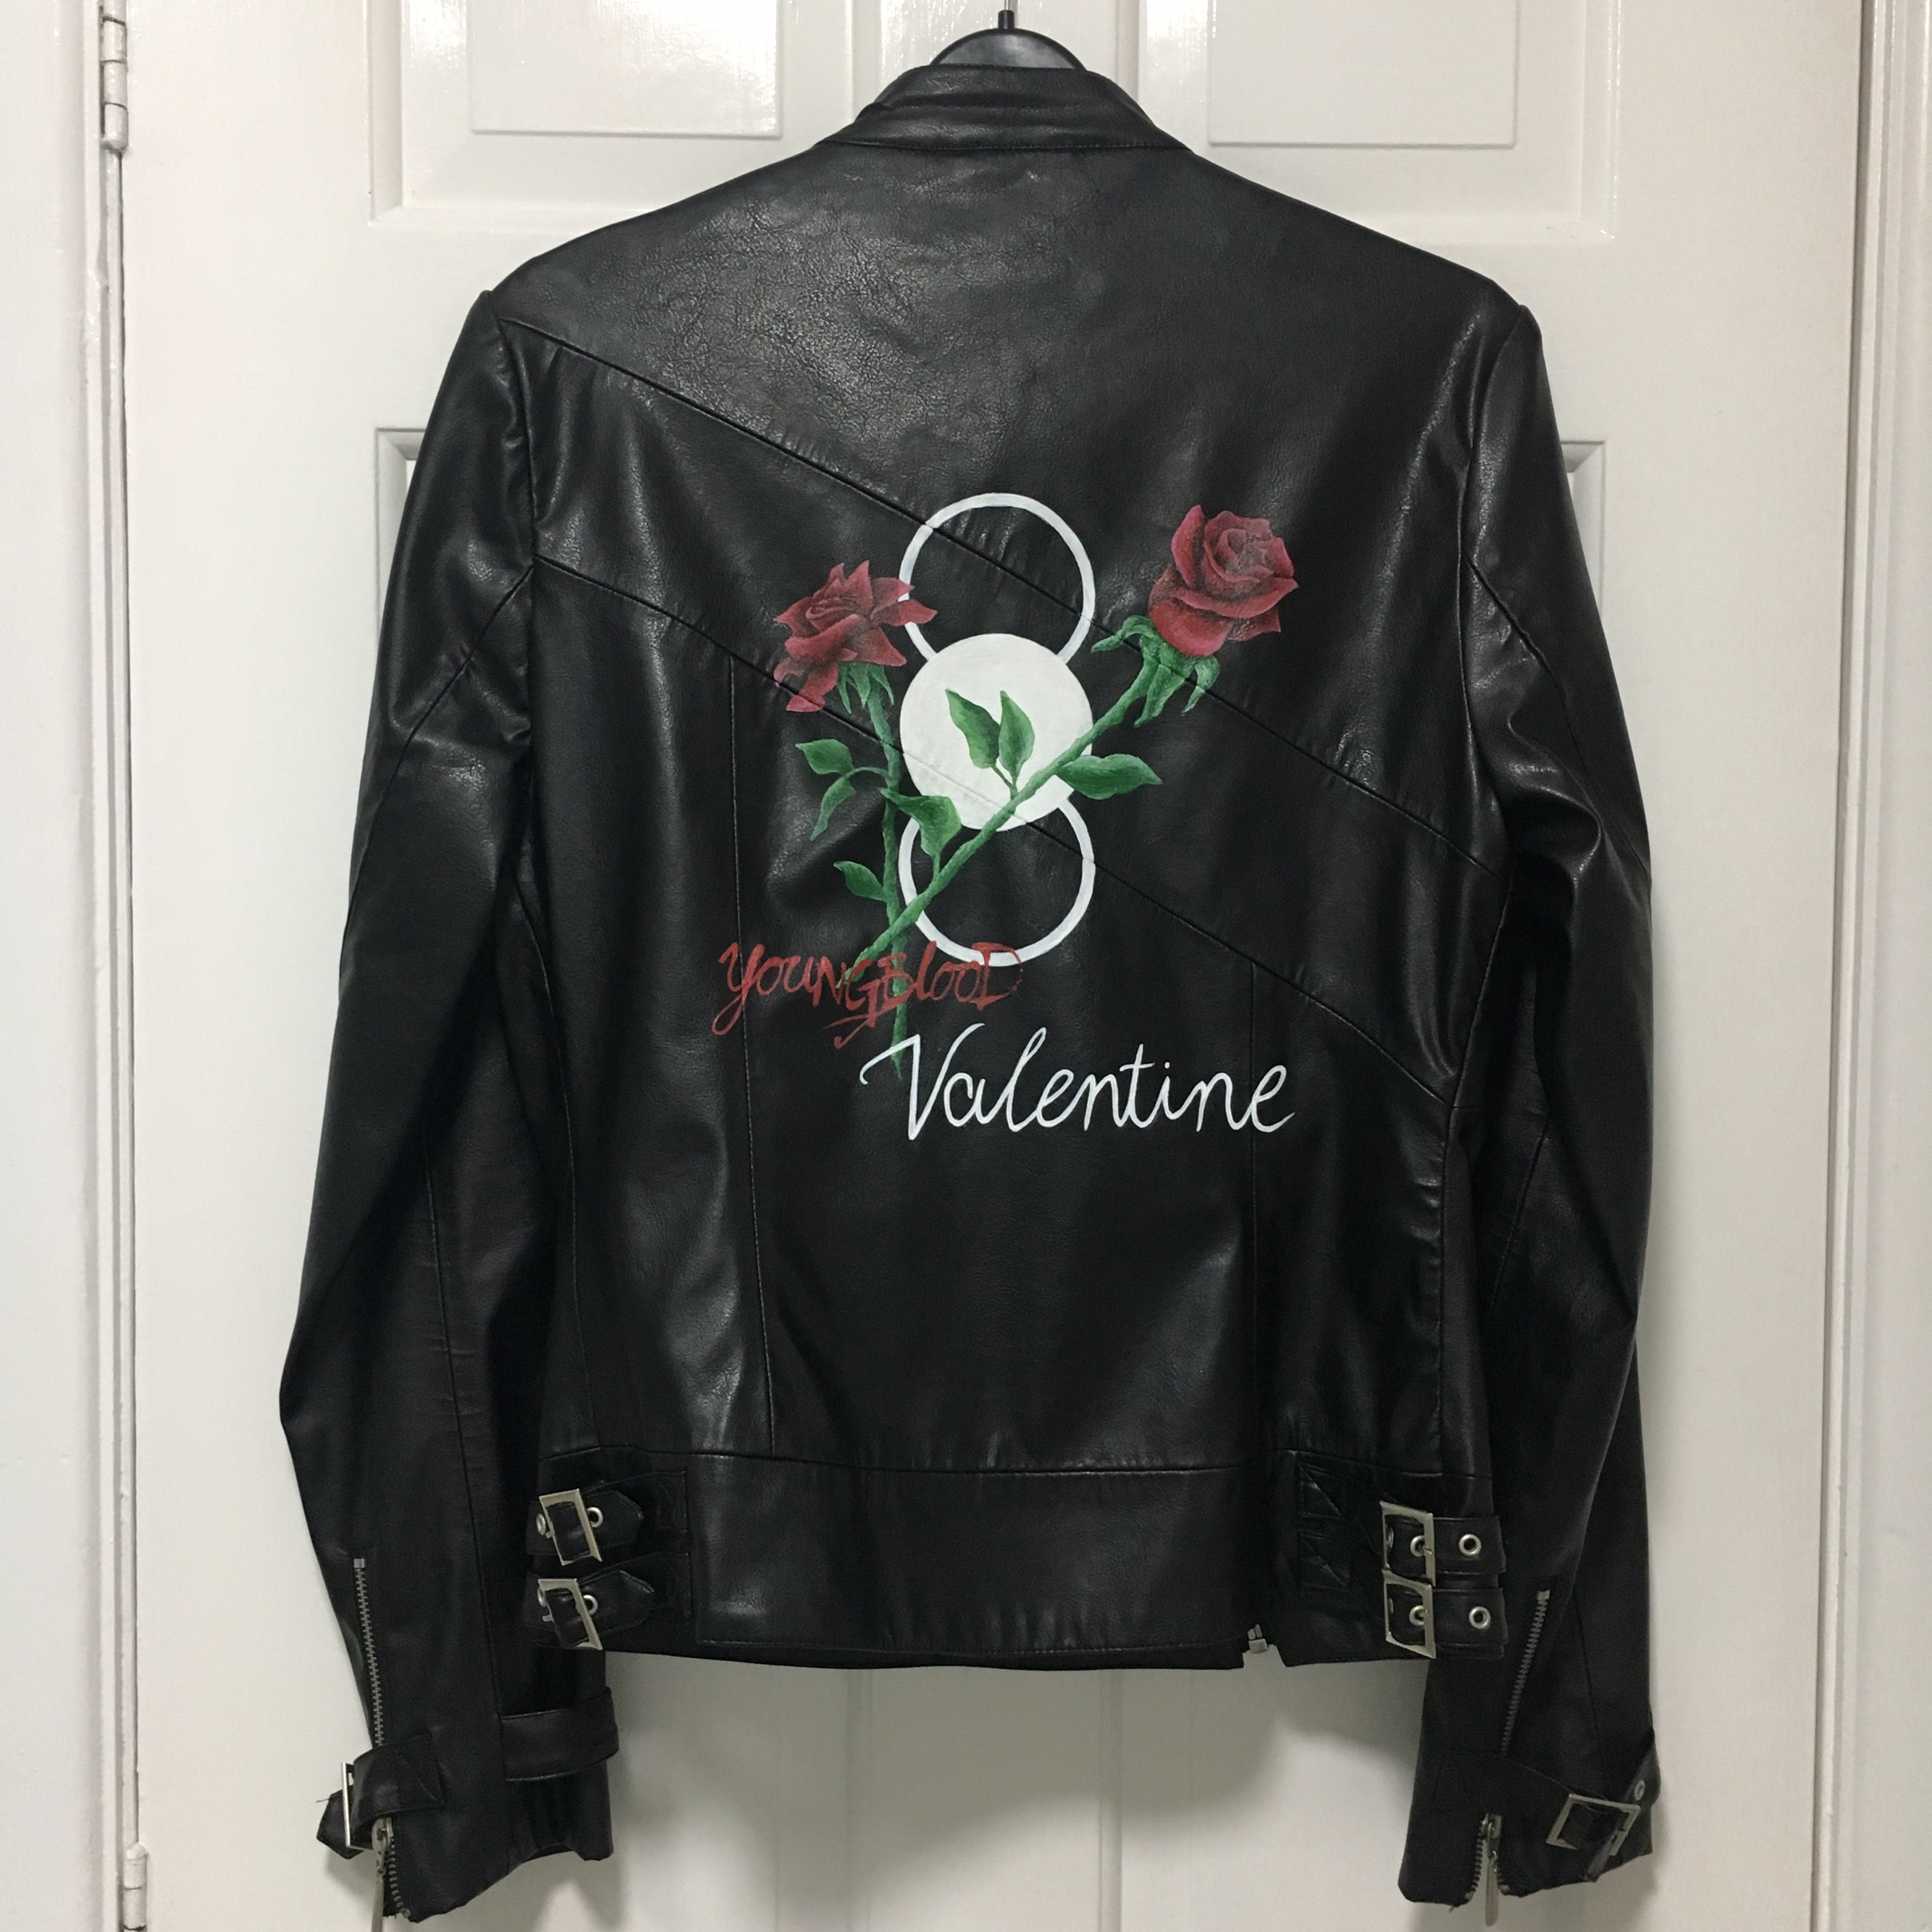 5sos inspired Hand painted black faux leather    - Depop